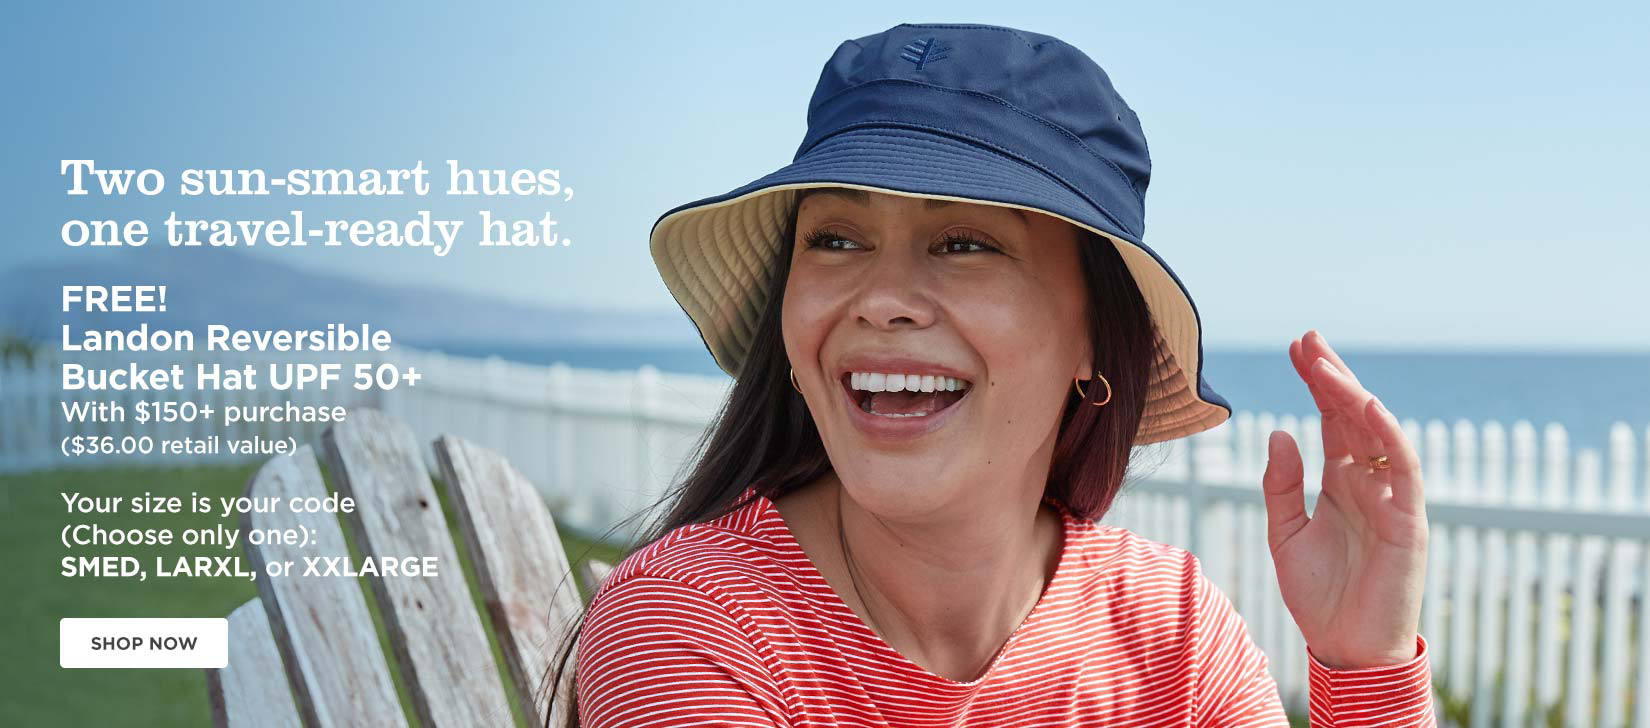 Two sun-smart travel hues. one travel-ready hat. FREE Landon Reversible Bucket Hat UPF 50+ WITH 150 minimum purchase ($36 retail value) Your code is your size - choose one:  SMED | LARXL | XXLARGE